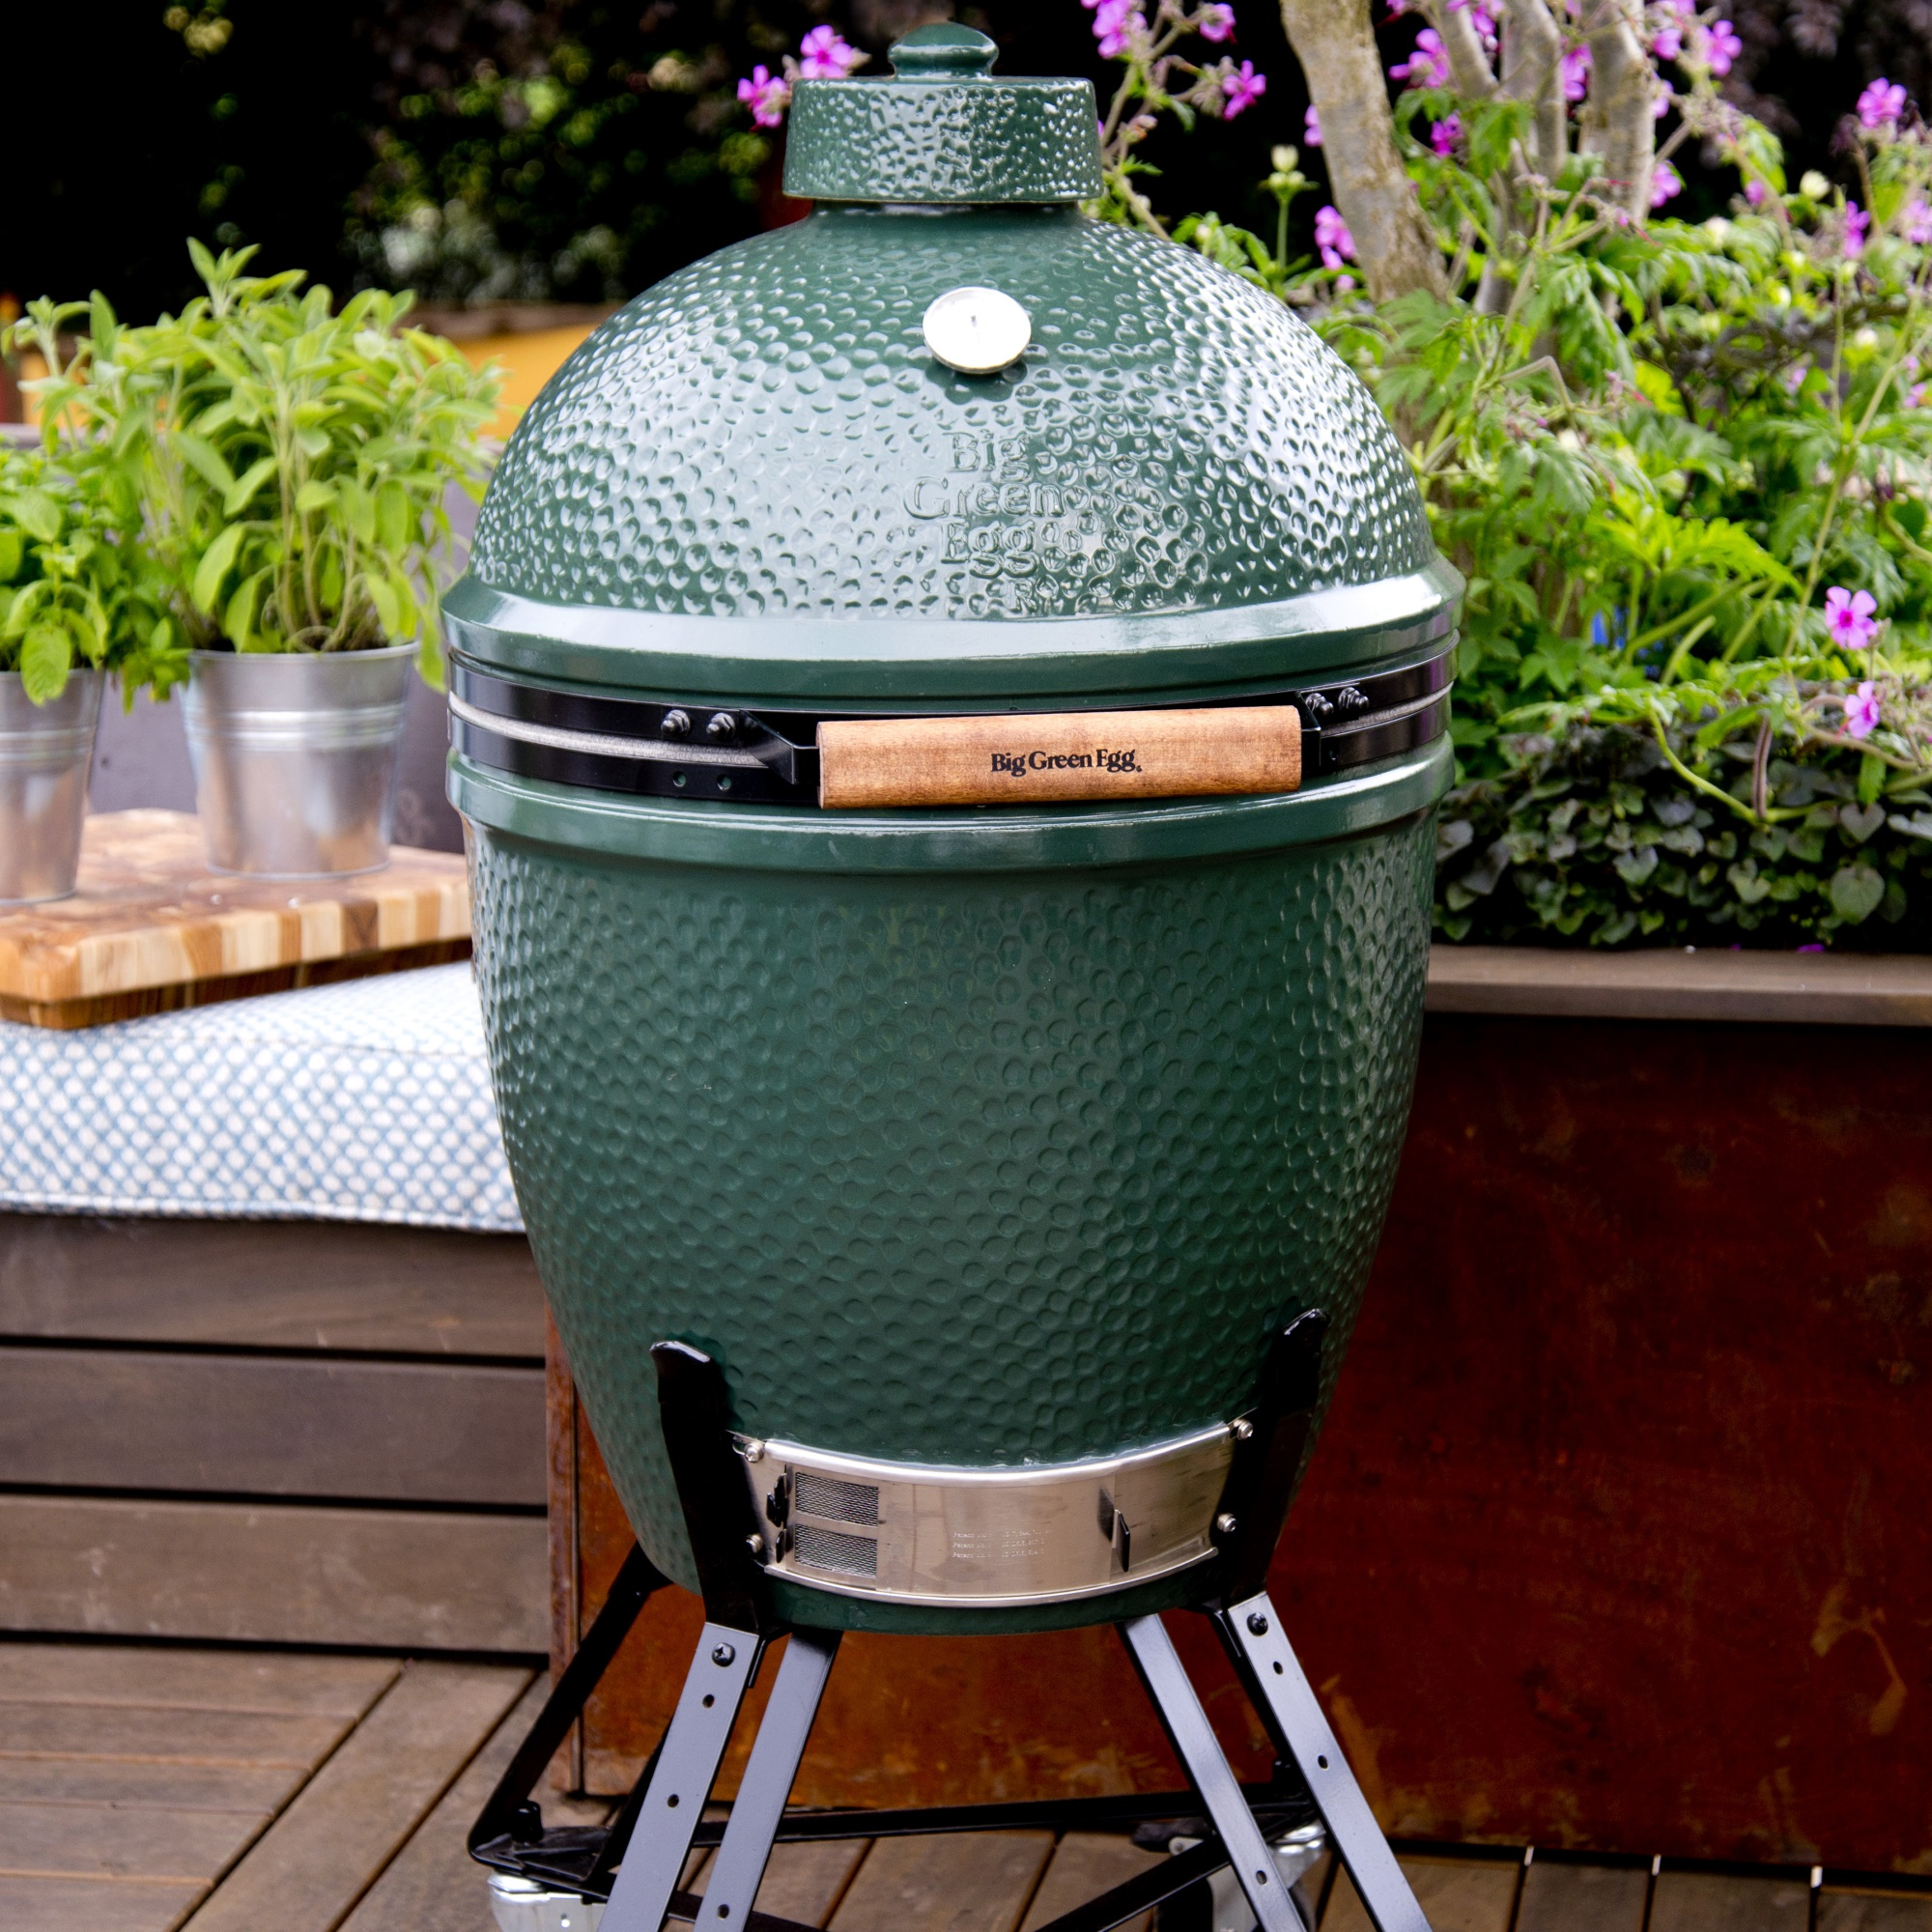 An image of Big Green Egg Large Starter Bundle